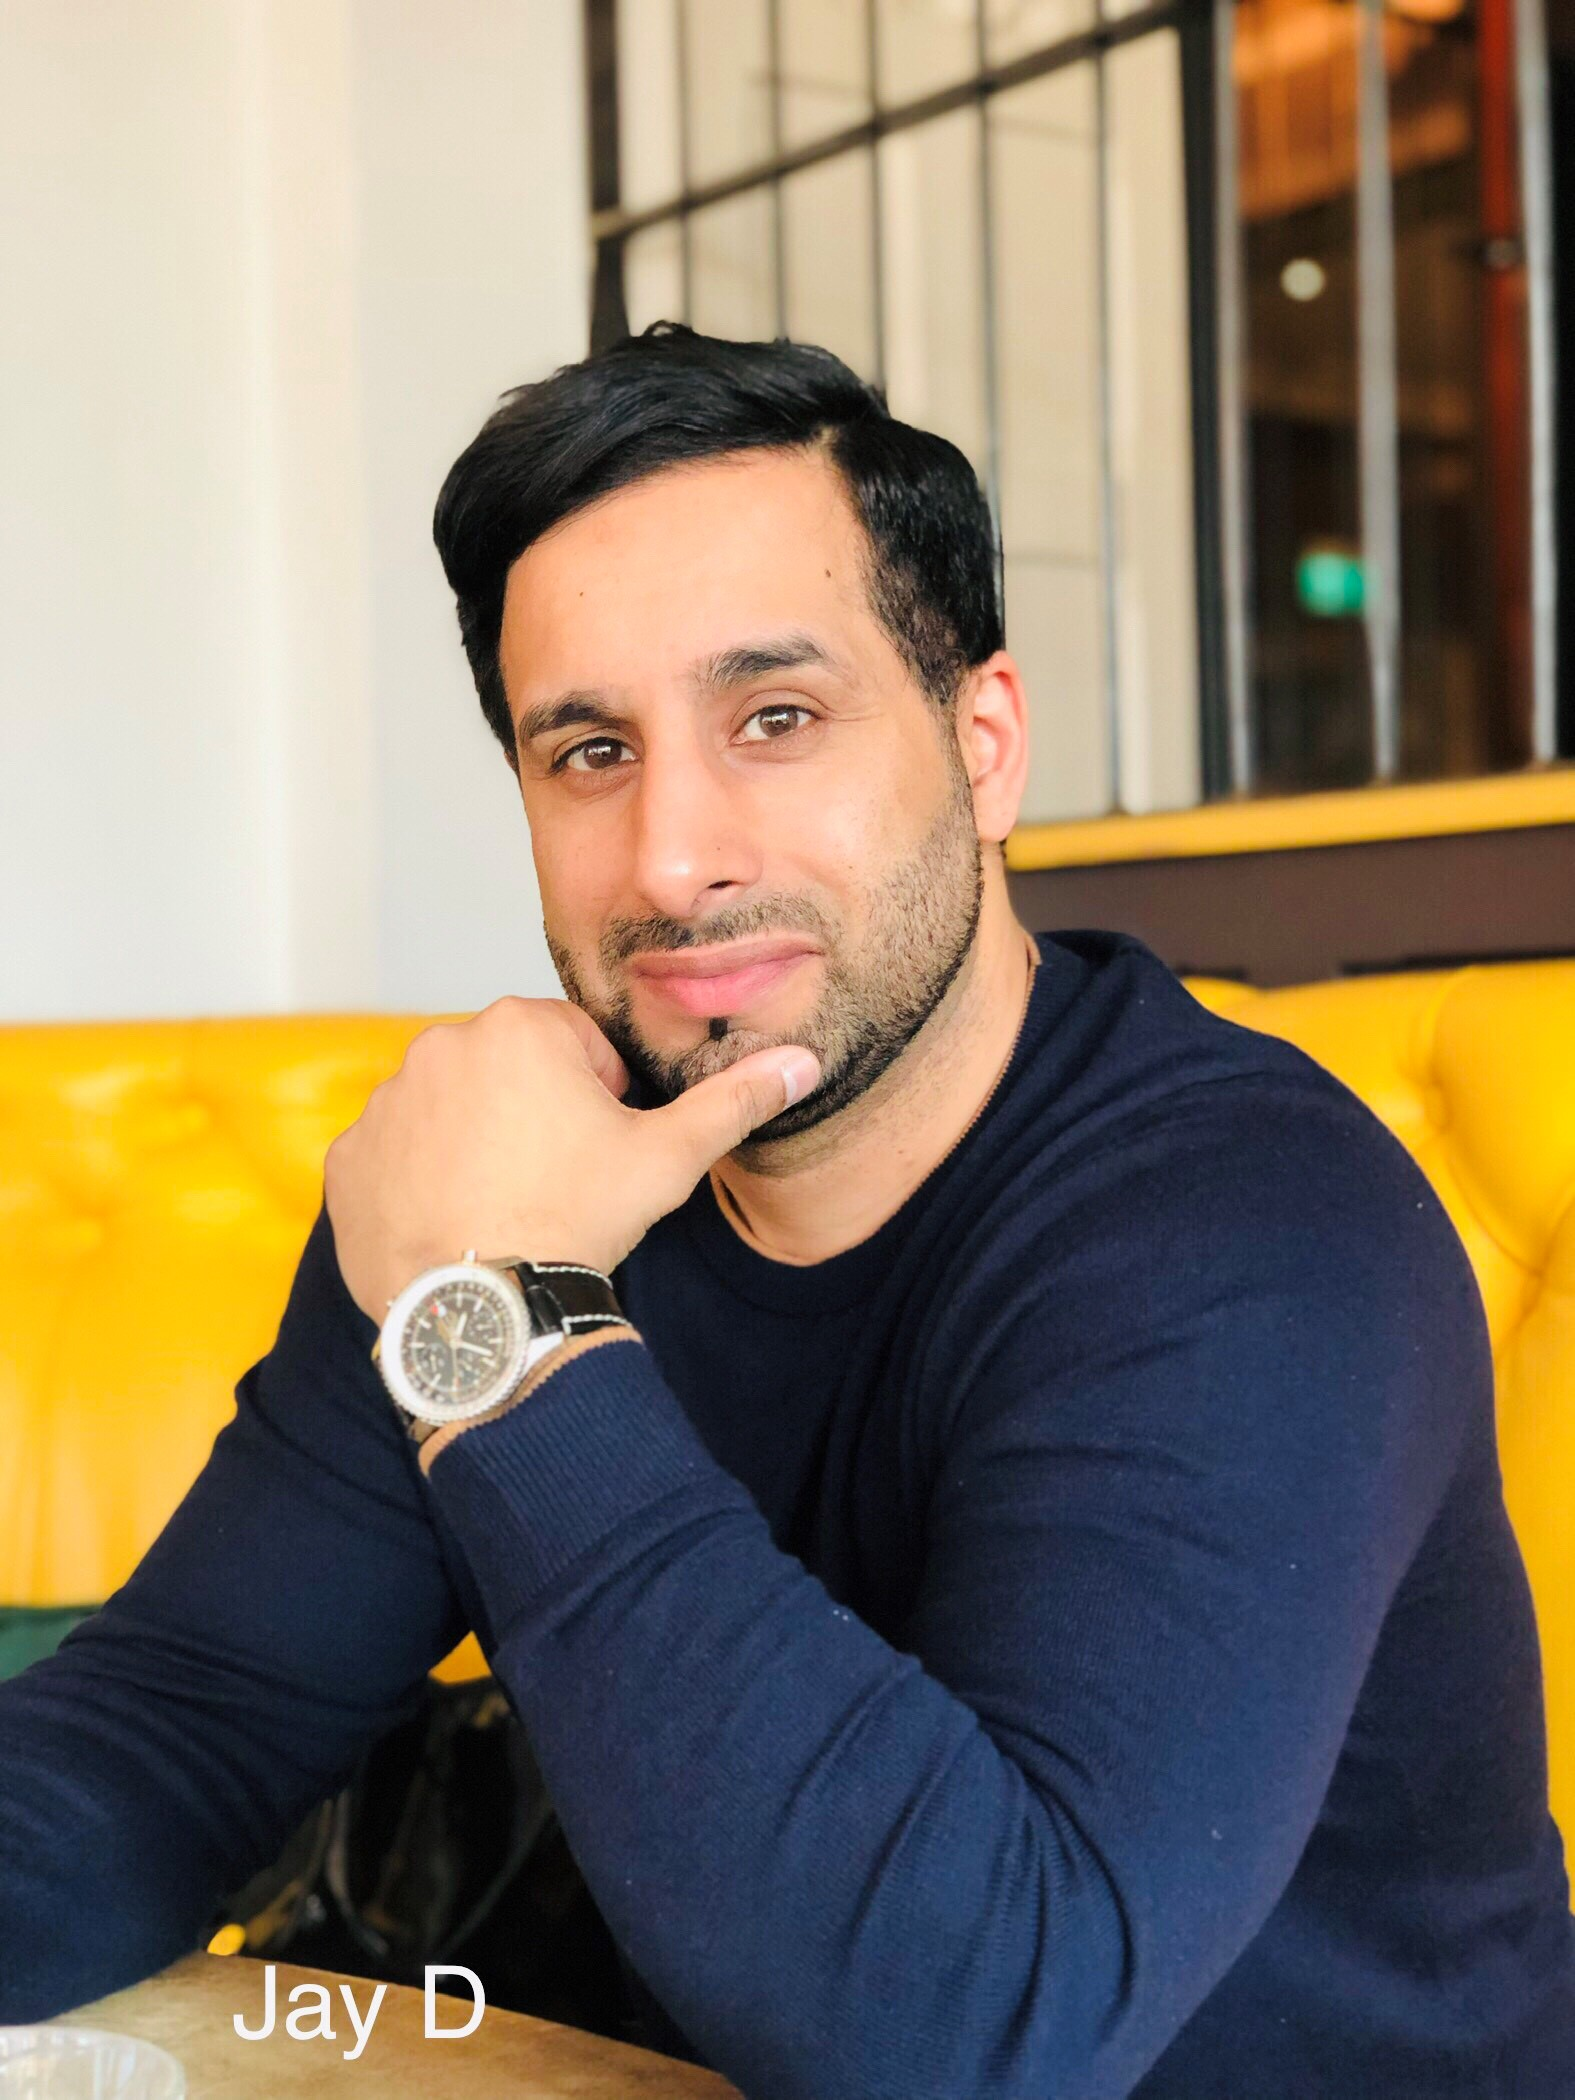 Jay Dhillon is hosting an event at Derby County's Pride Park Stadium in May. Penguin PR: public relations, media and communications.